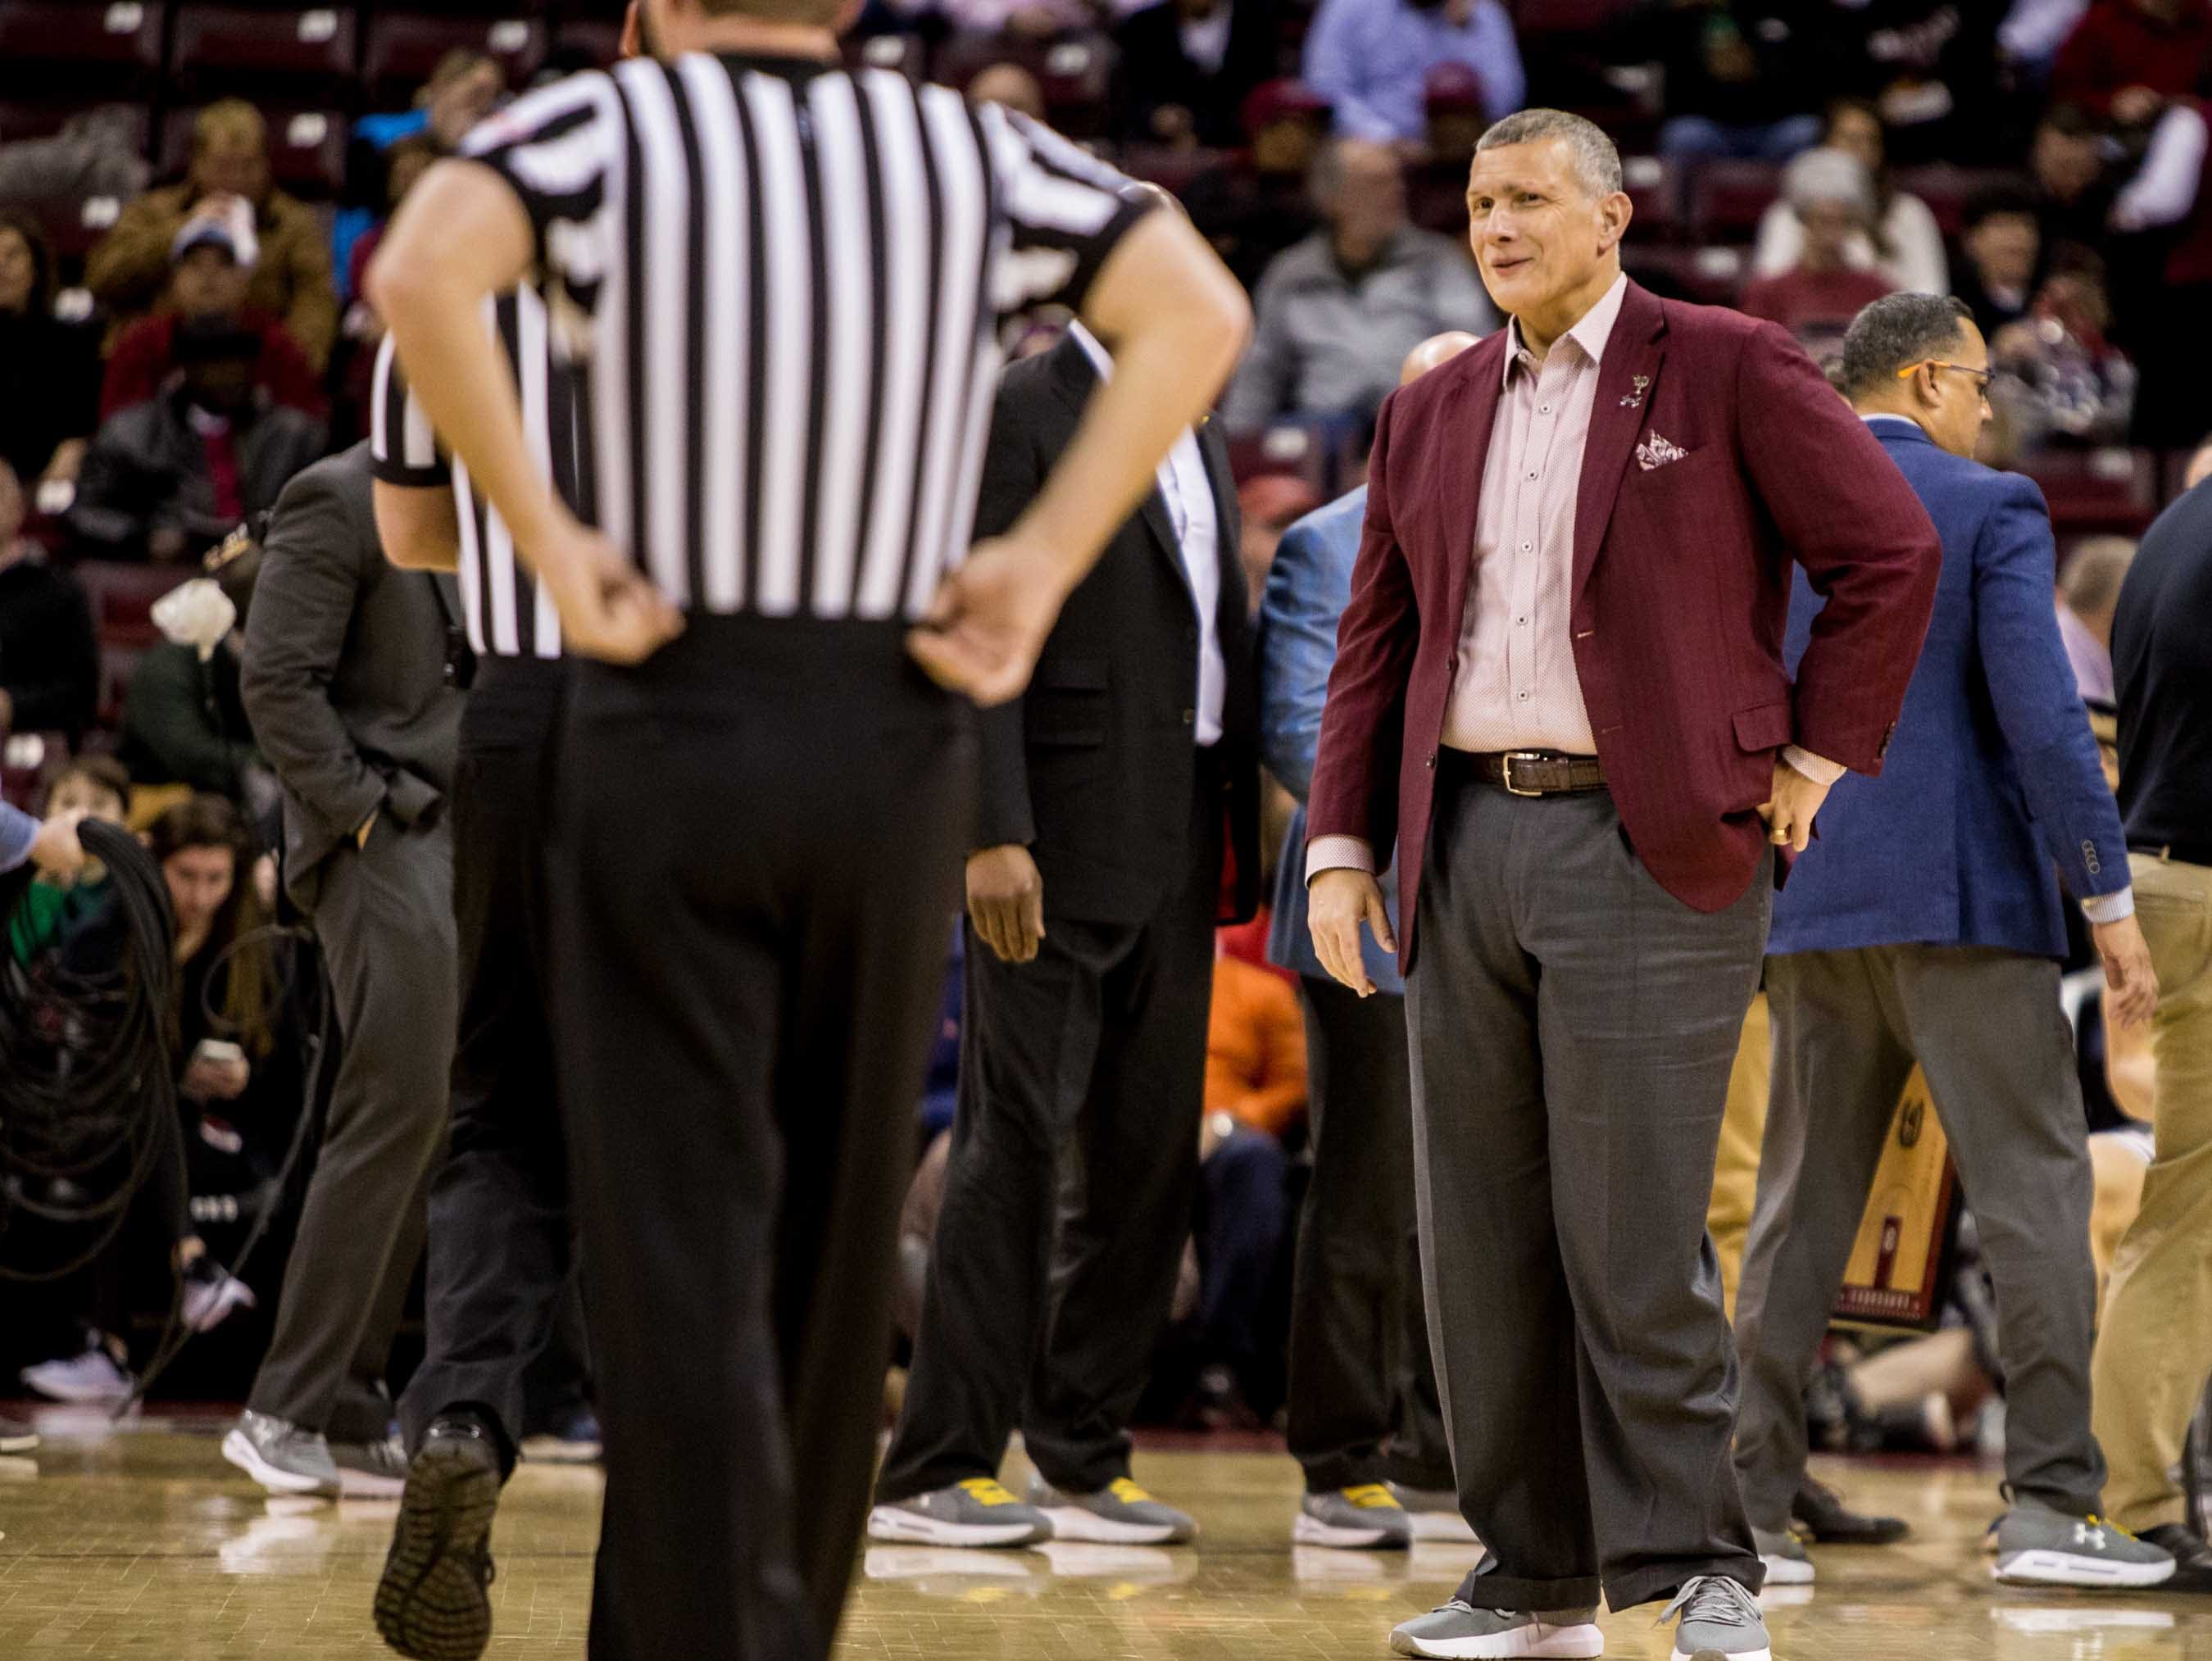 Jan 22, 2019; Columbia, SC, USA; South Carolina Gamecocks head coach Frank Martin disputes a call against the Auburn Tigers in the first half at Colonial Life Arena. Mandatory Credit: Jeff Blake-USA TODAY Sports